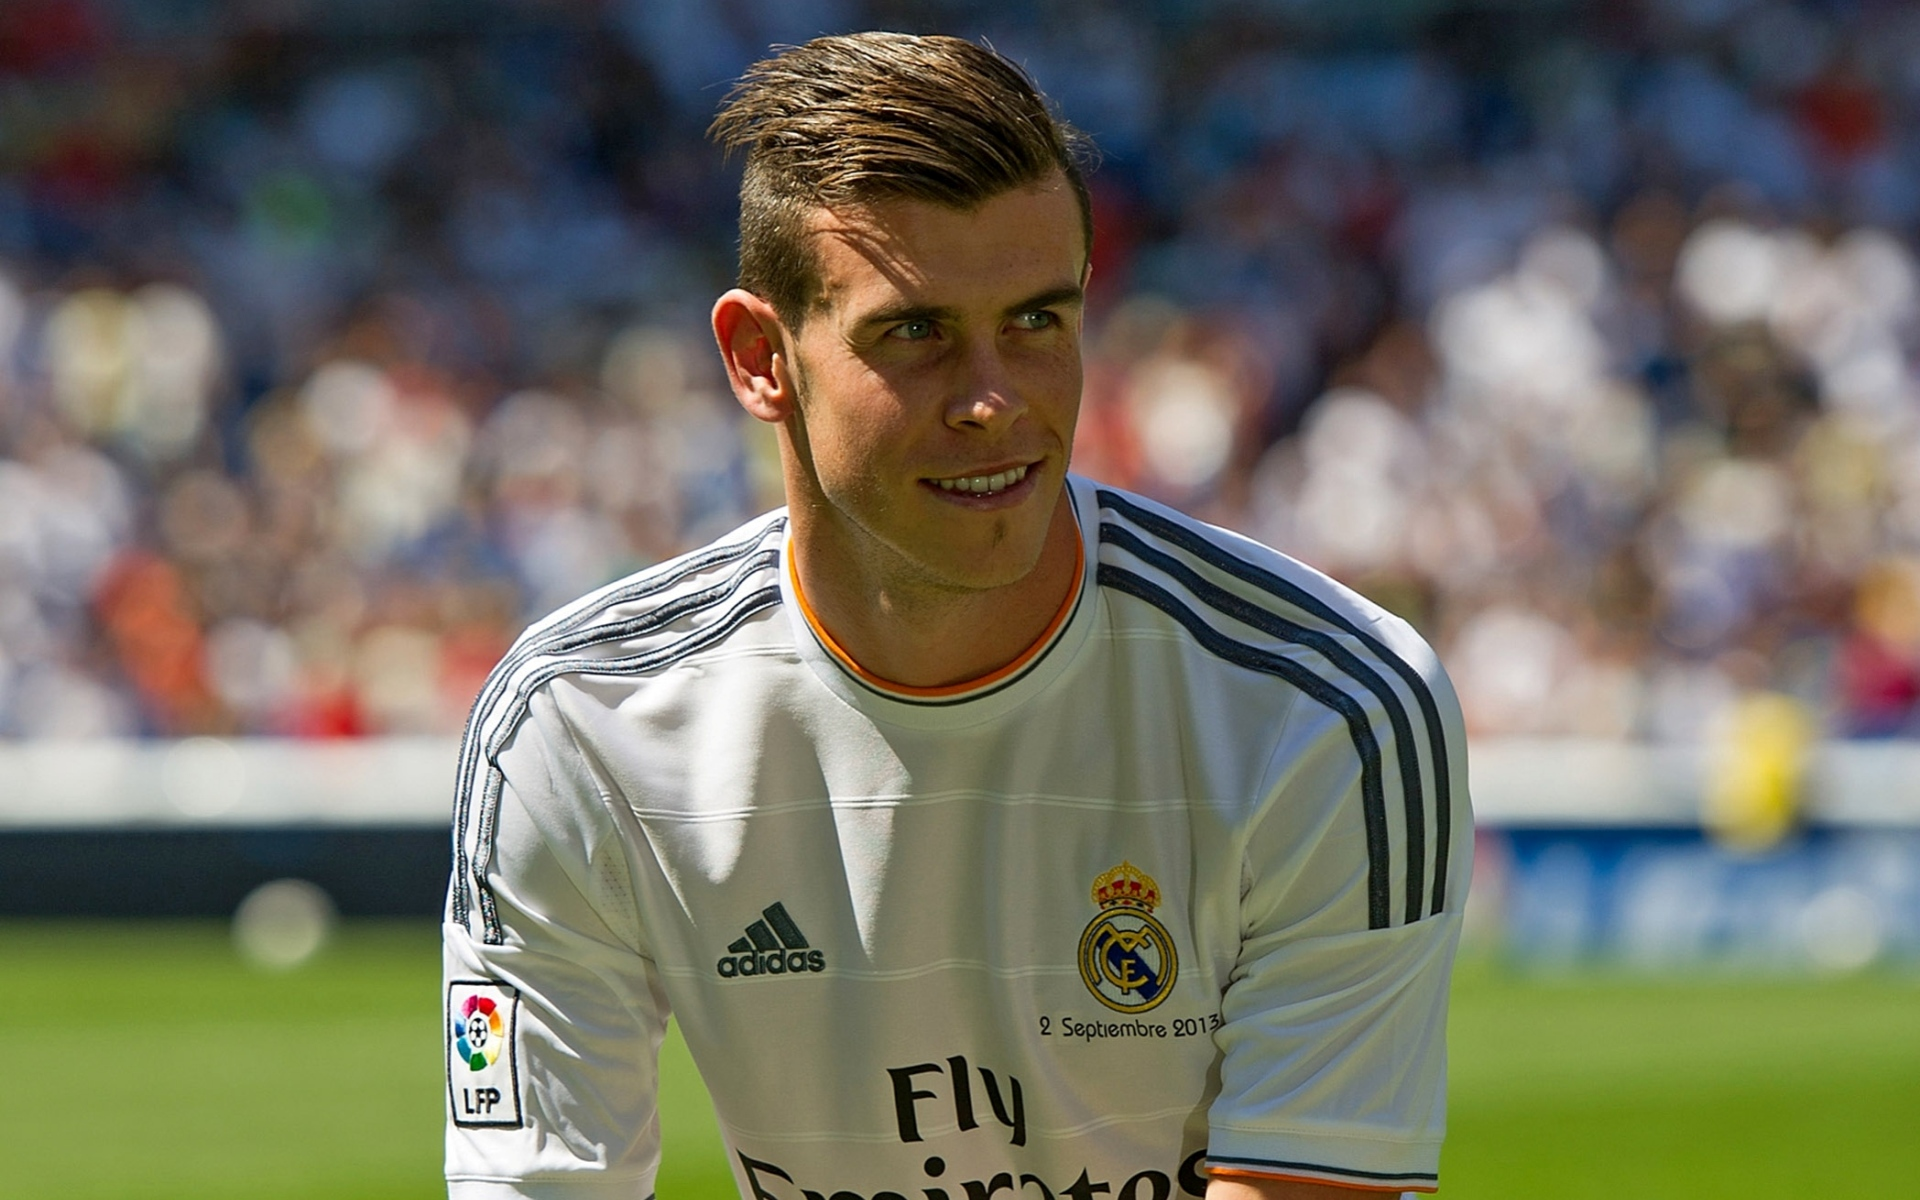 Gareth Bale Real Madrid Wallpaper